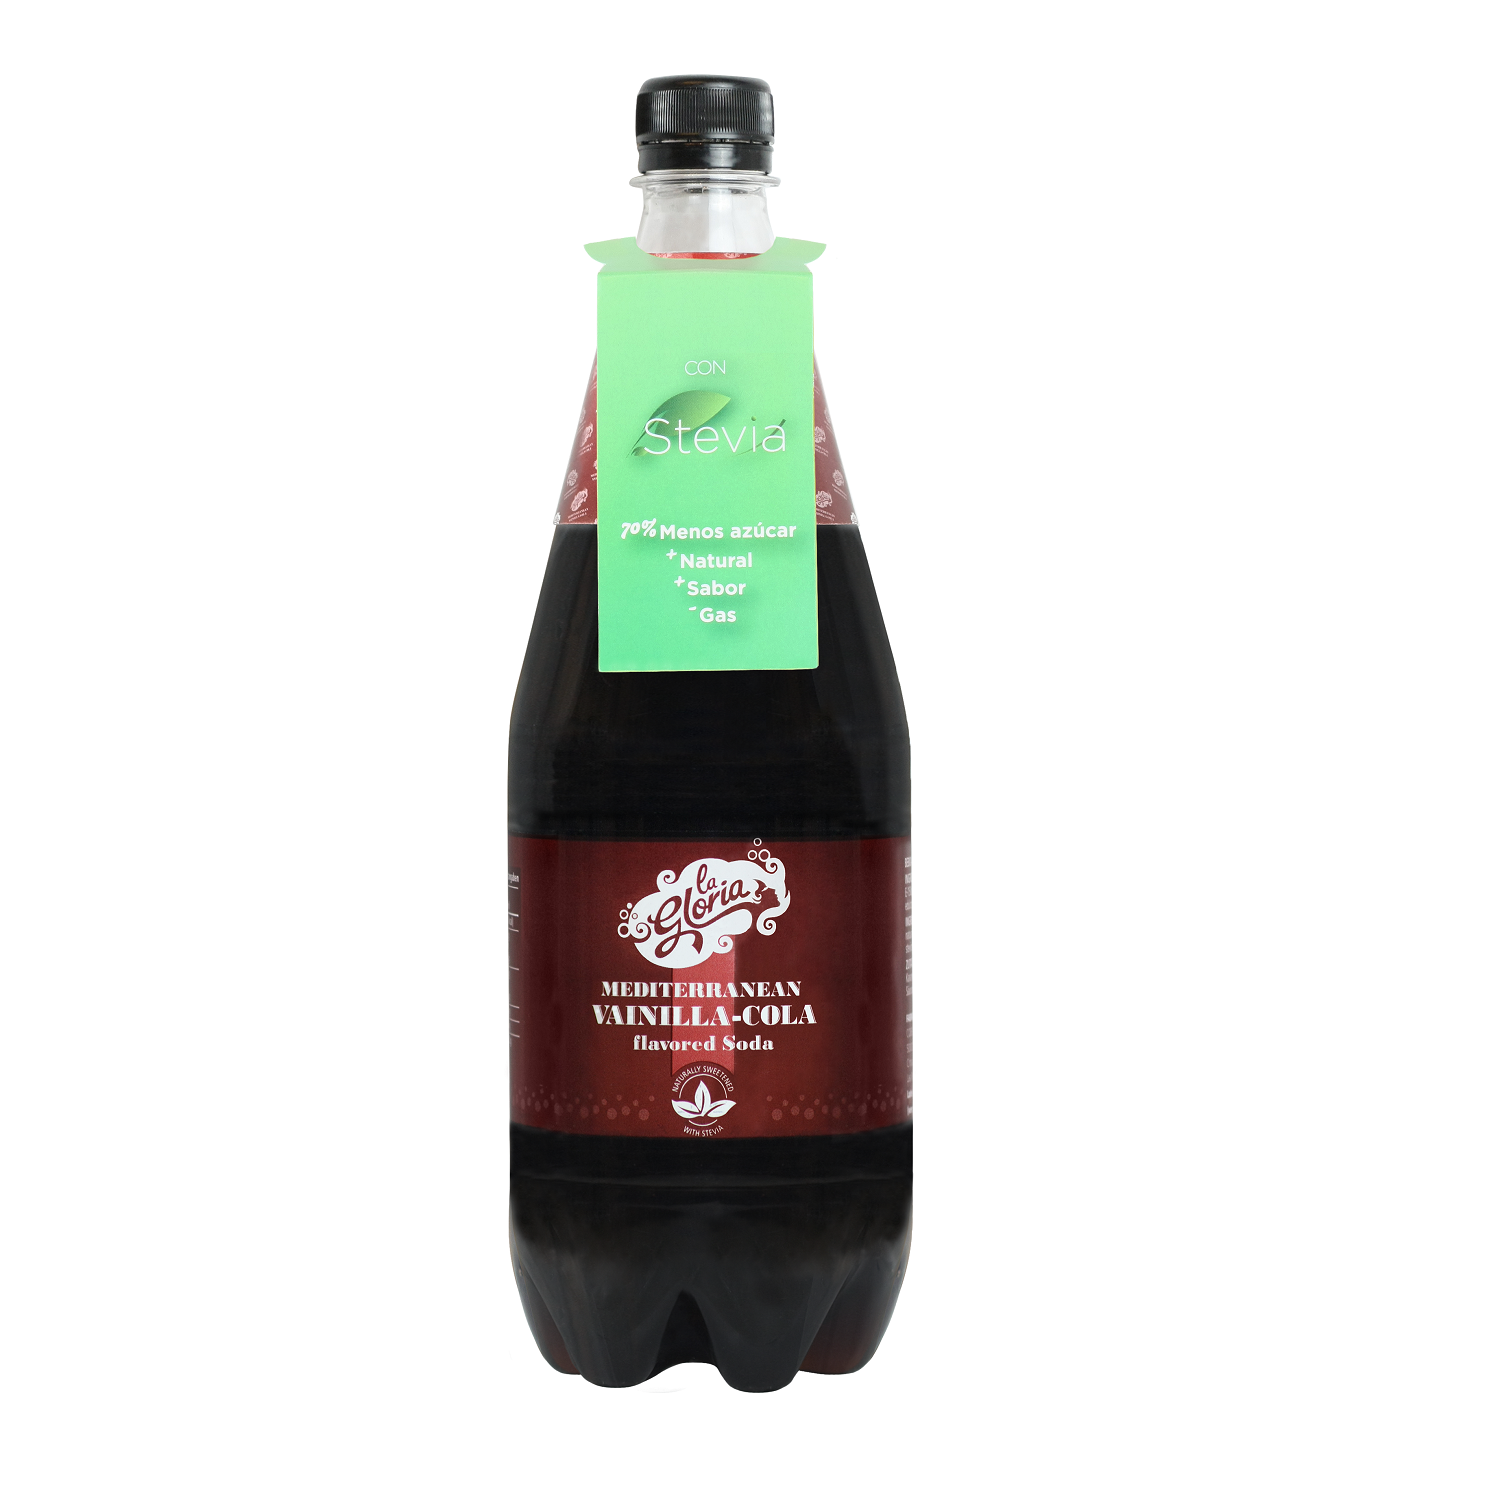 Refresco de cola La Gloria con Stevia botella 1 l.